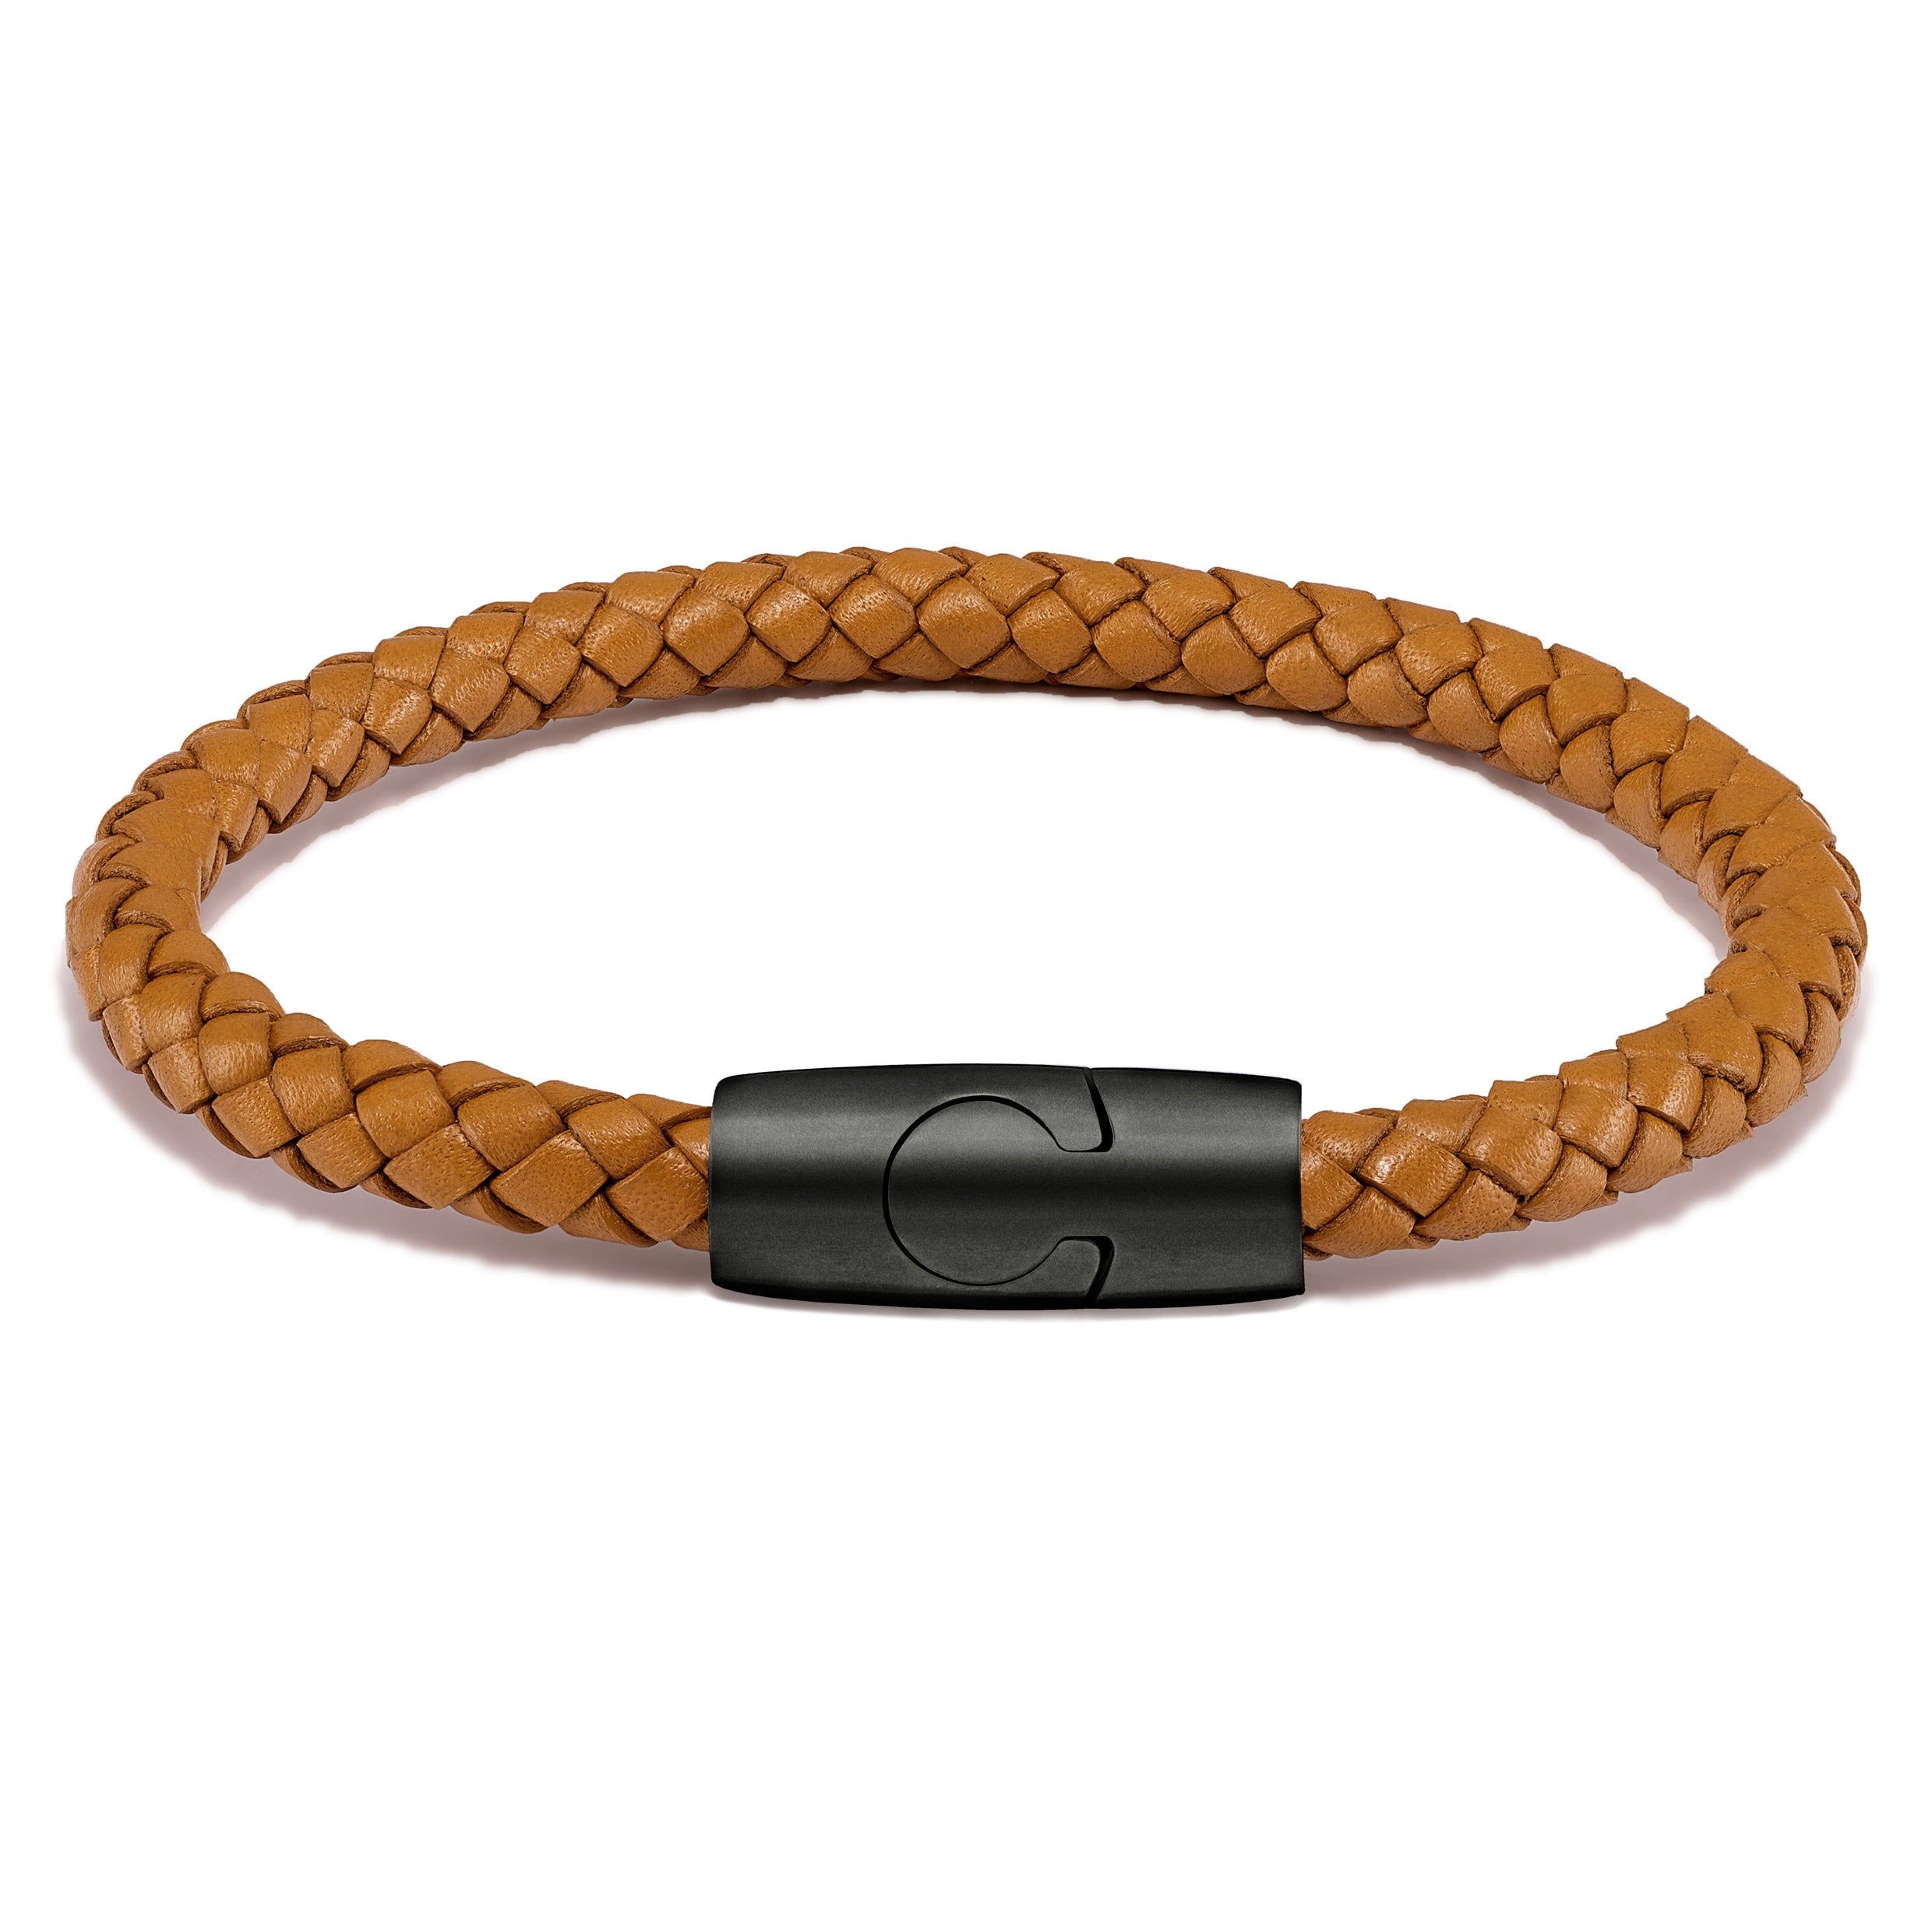 Men's Luxury Tan Croc Italian Leather Single Braided Bracelet Strap Matte Black Clasp